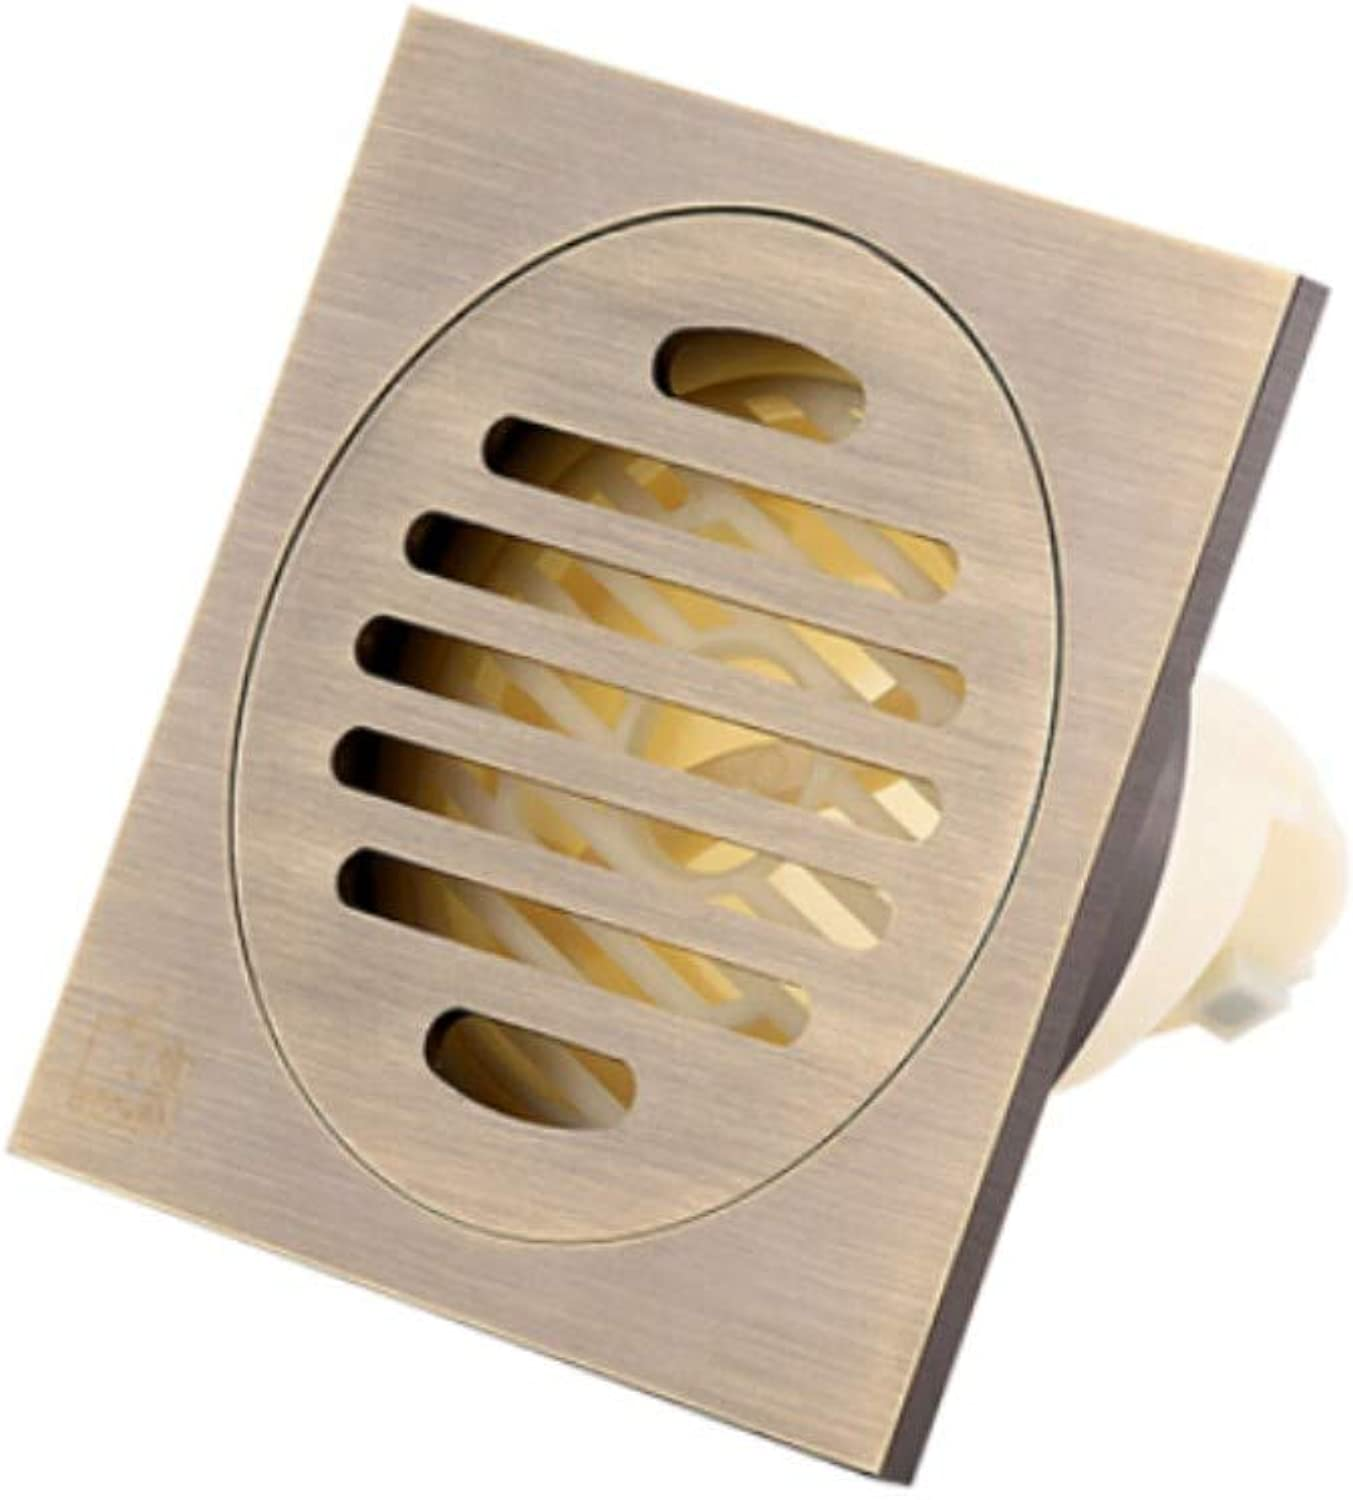 Deodorant, Insect Proof and Taste Resistant Dry and Wet Area Floor Drain